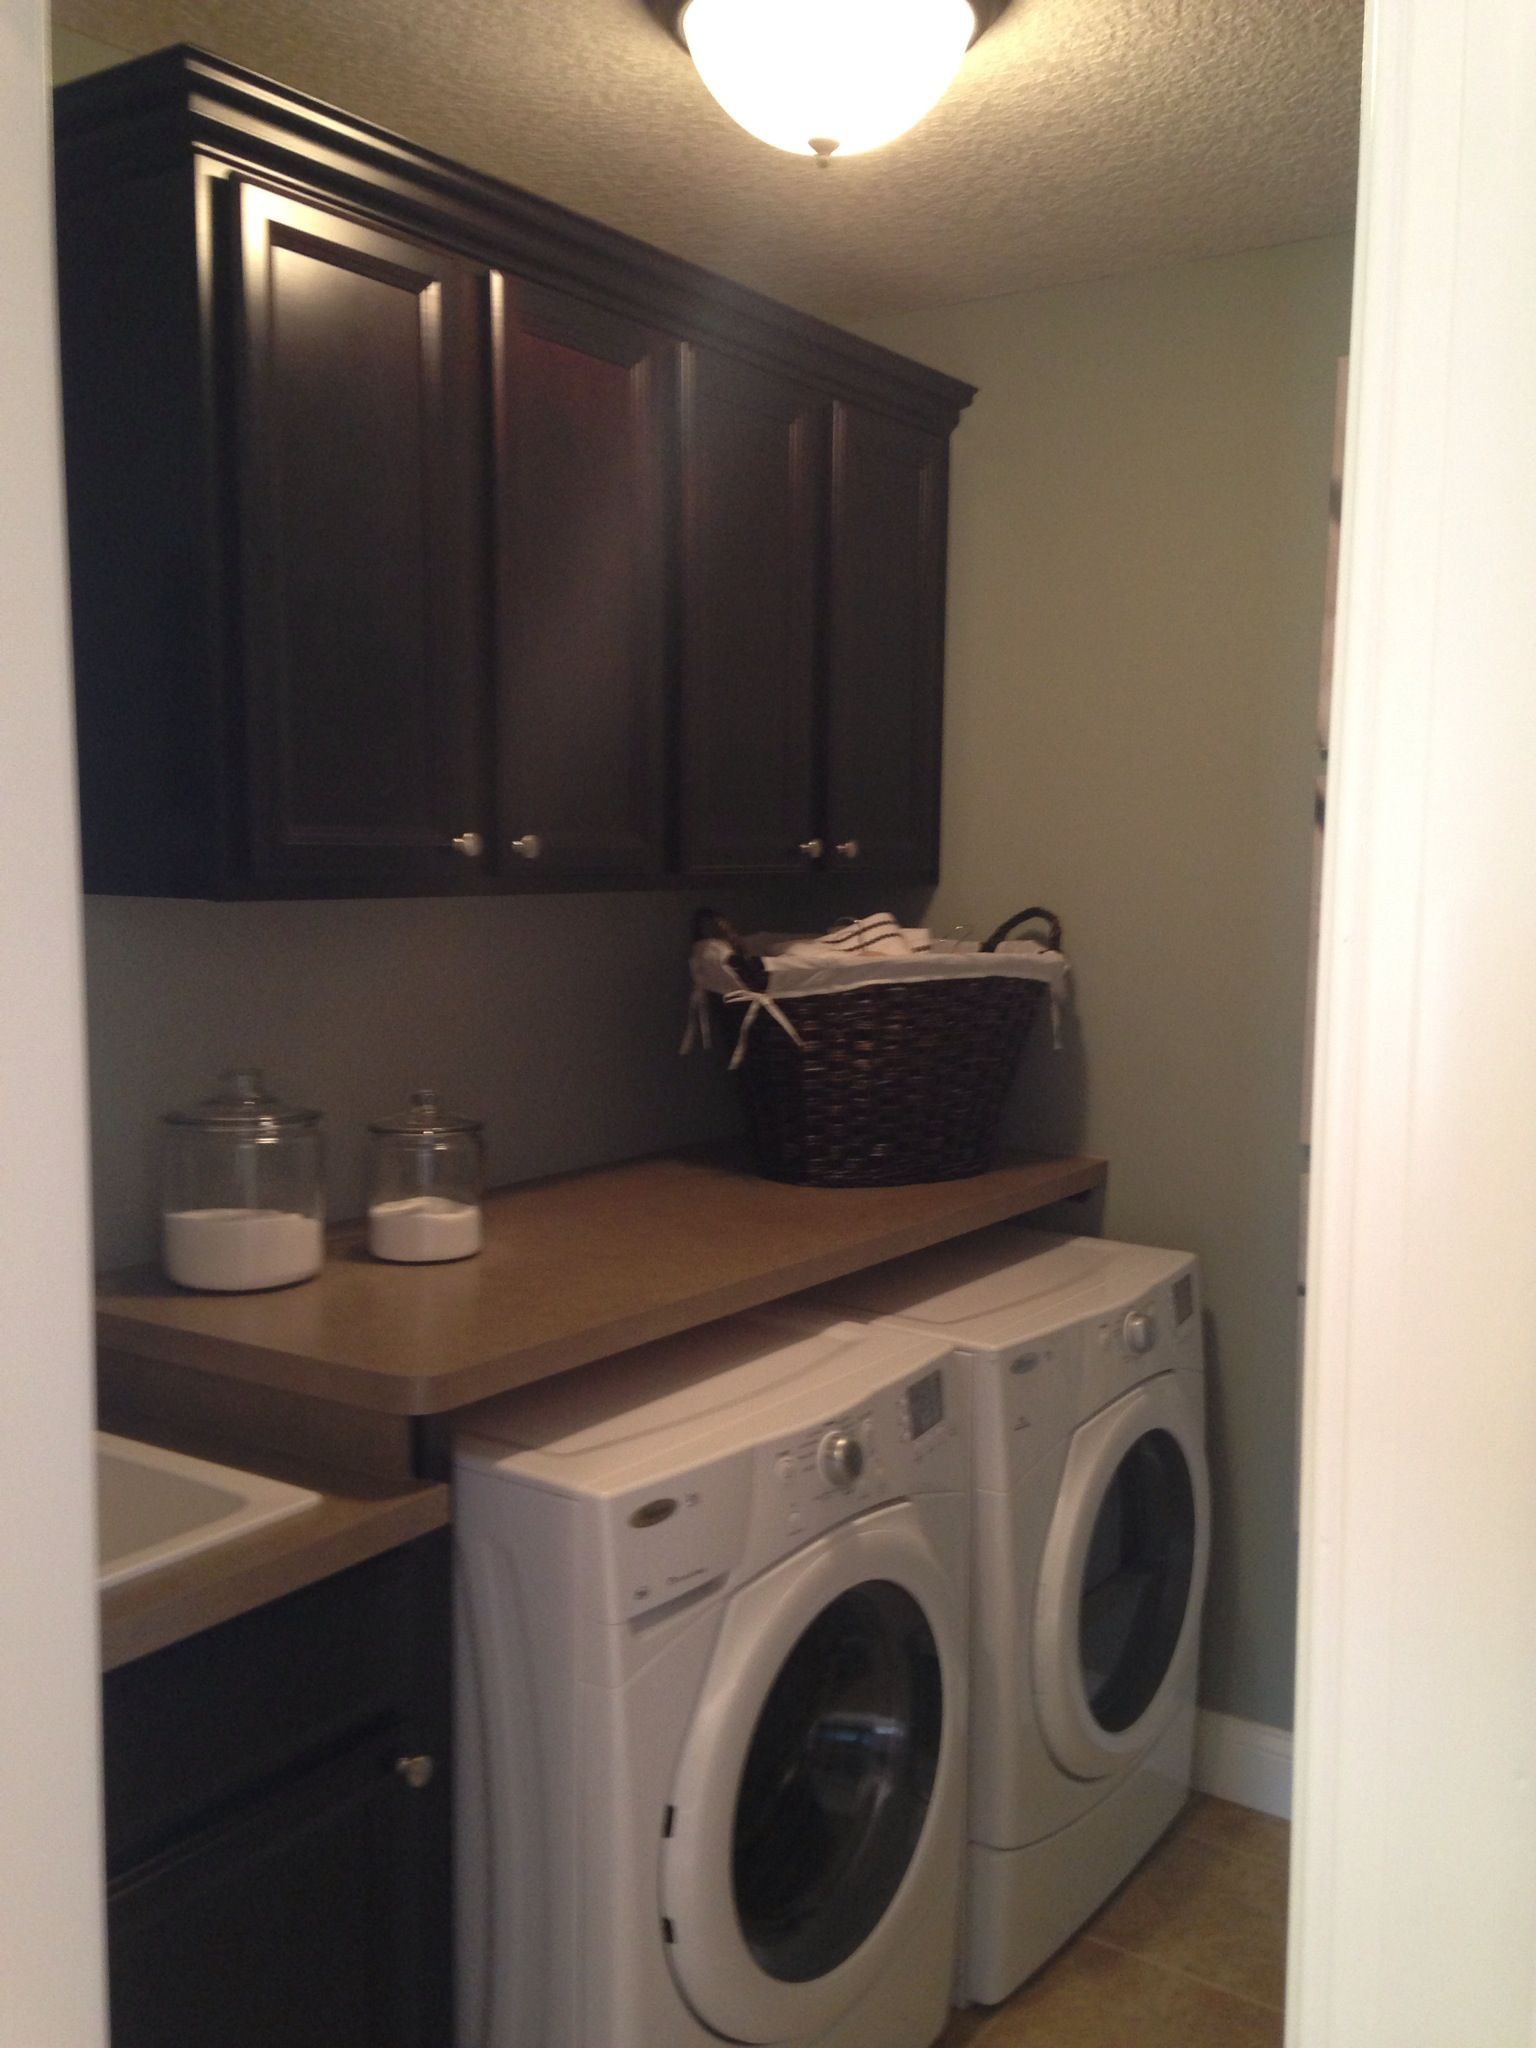 Laundry Room Countertops Kitchen Countertops Diy Countertops